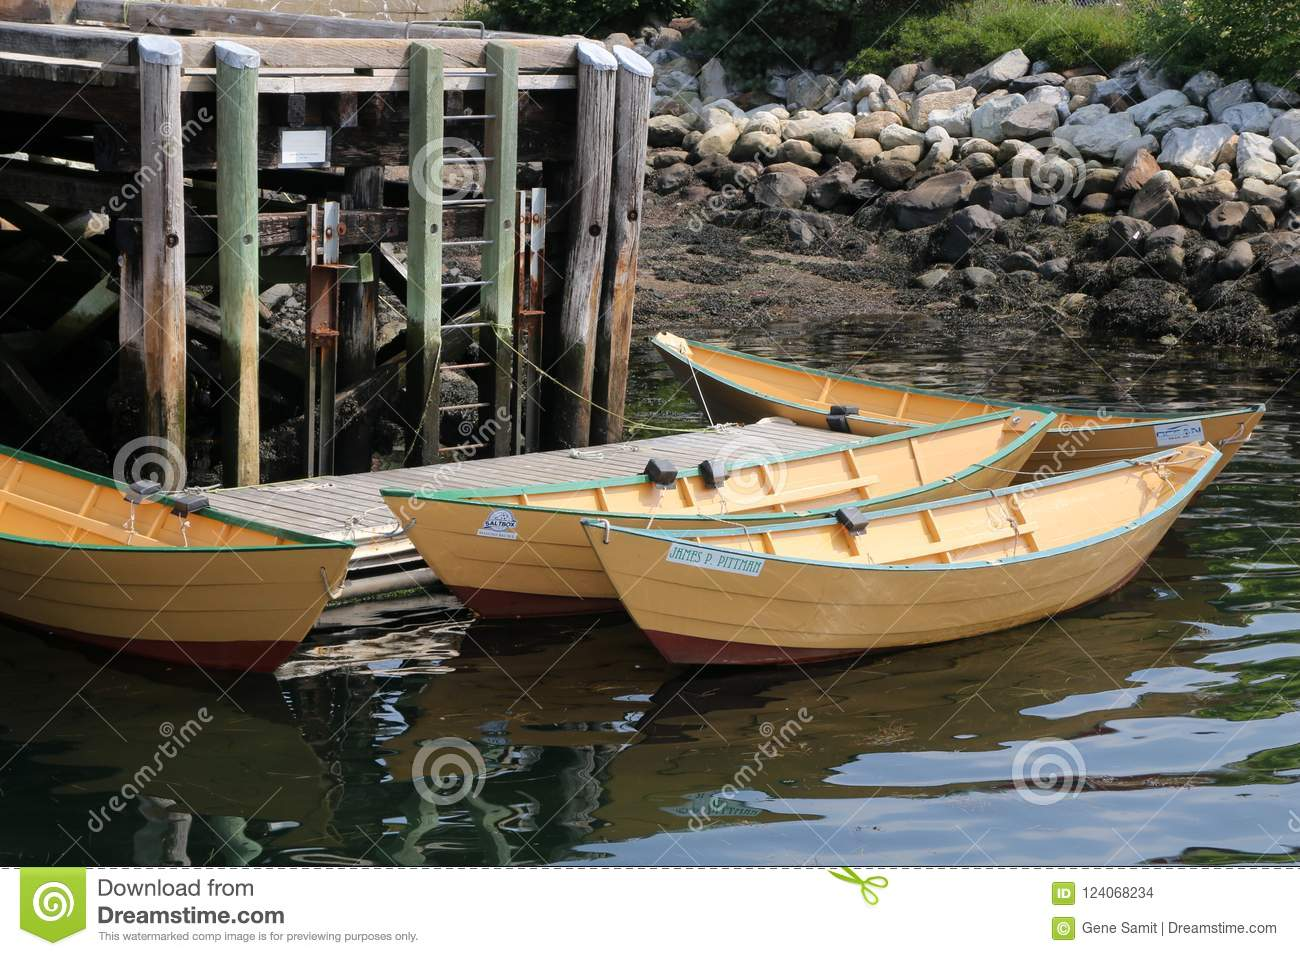 The 3 small rowboats are tied to the pier.